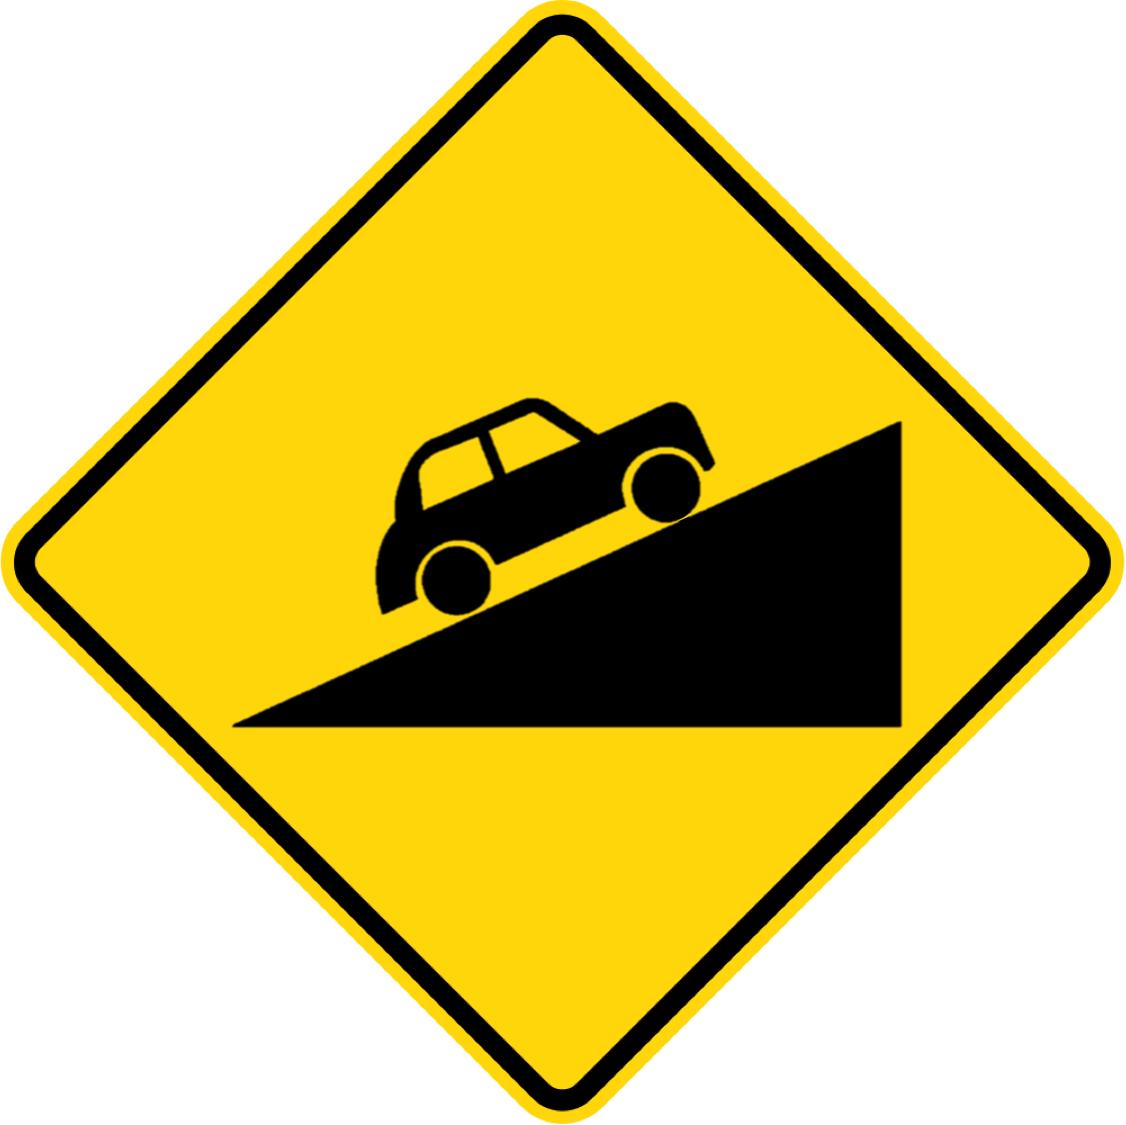 fileindonesian road sign 2apng wikimedia commons